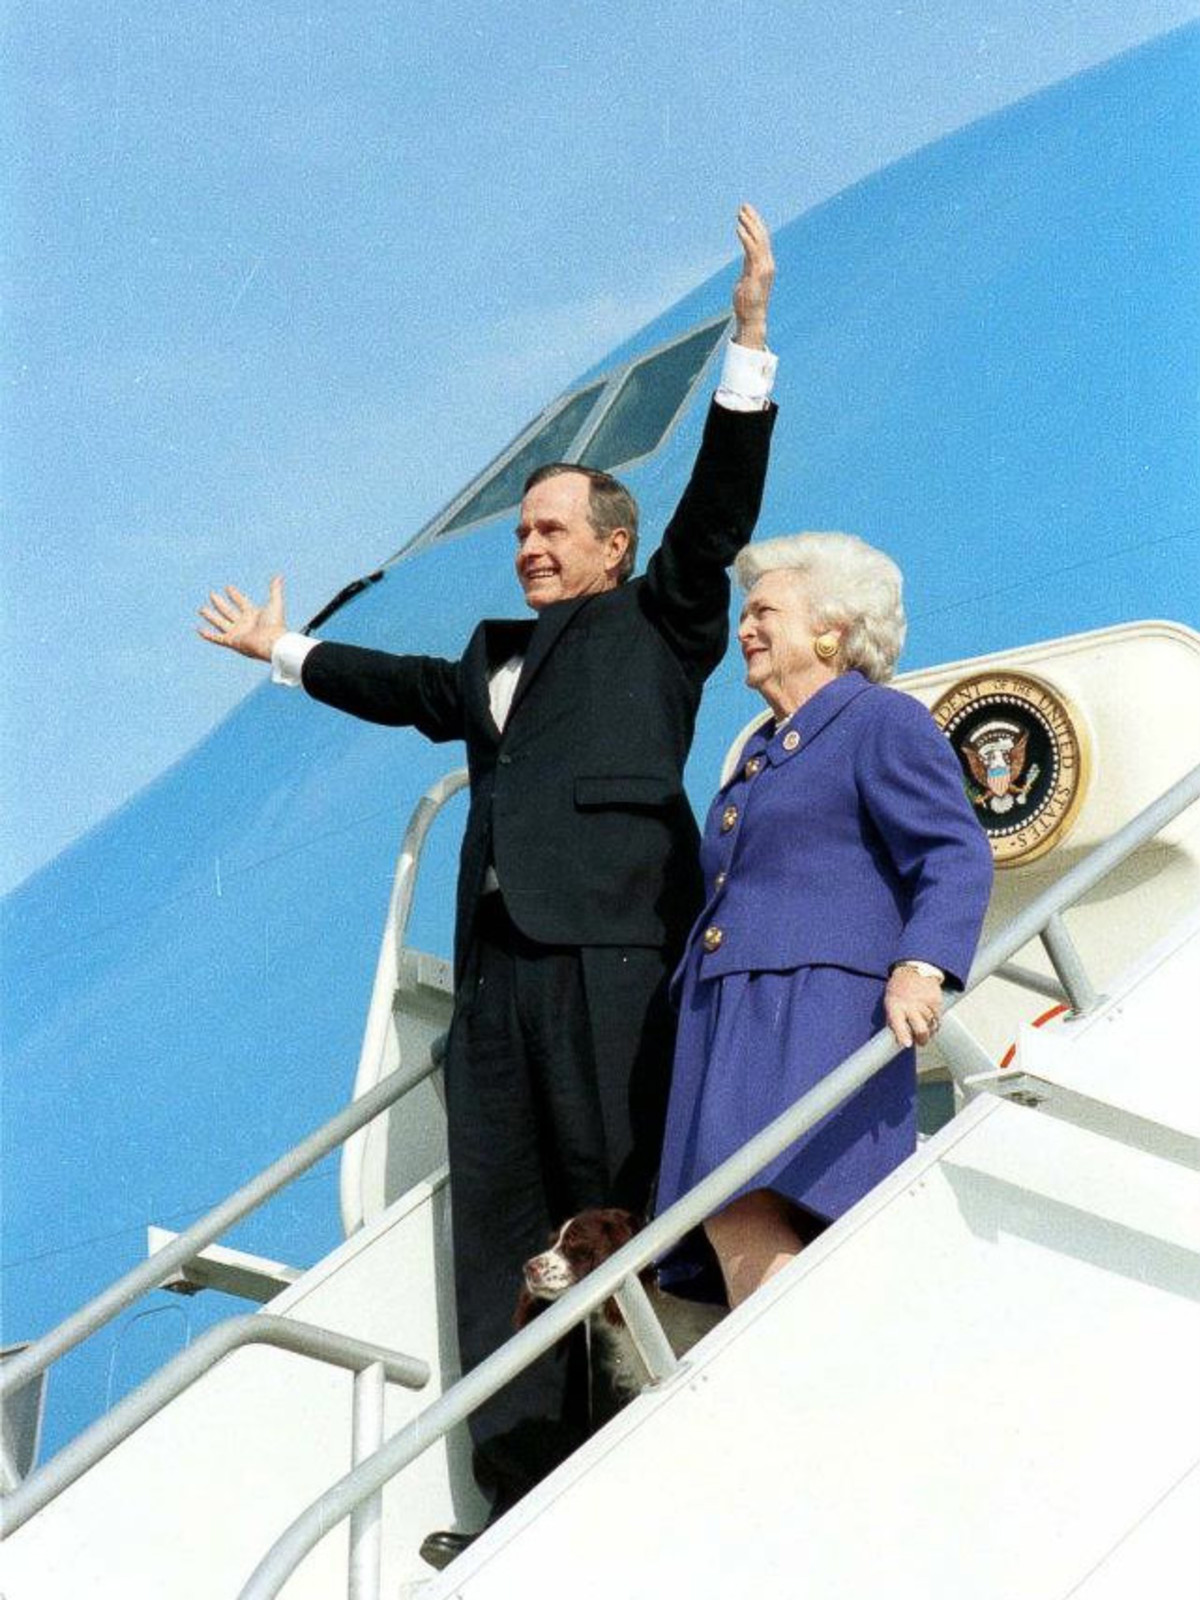 George H.W. Bush, Barbara Bush, arrive in Houston after inaugural ceremony, Jan. 20, 1993